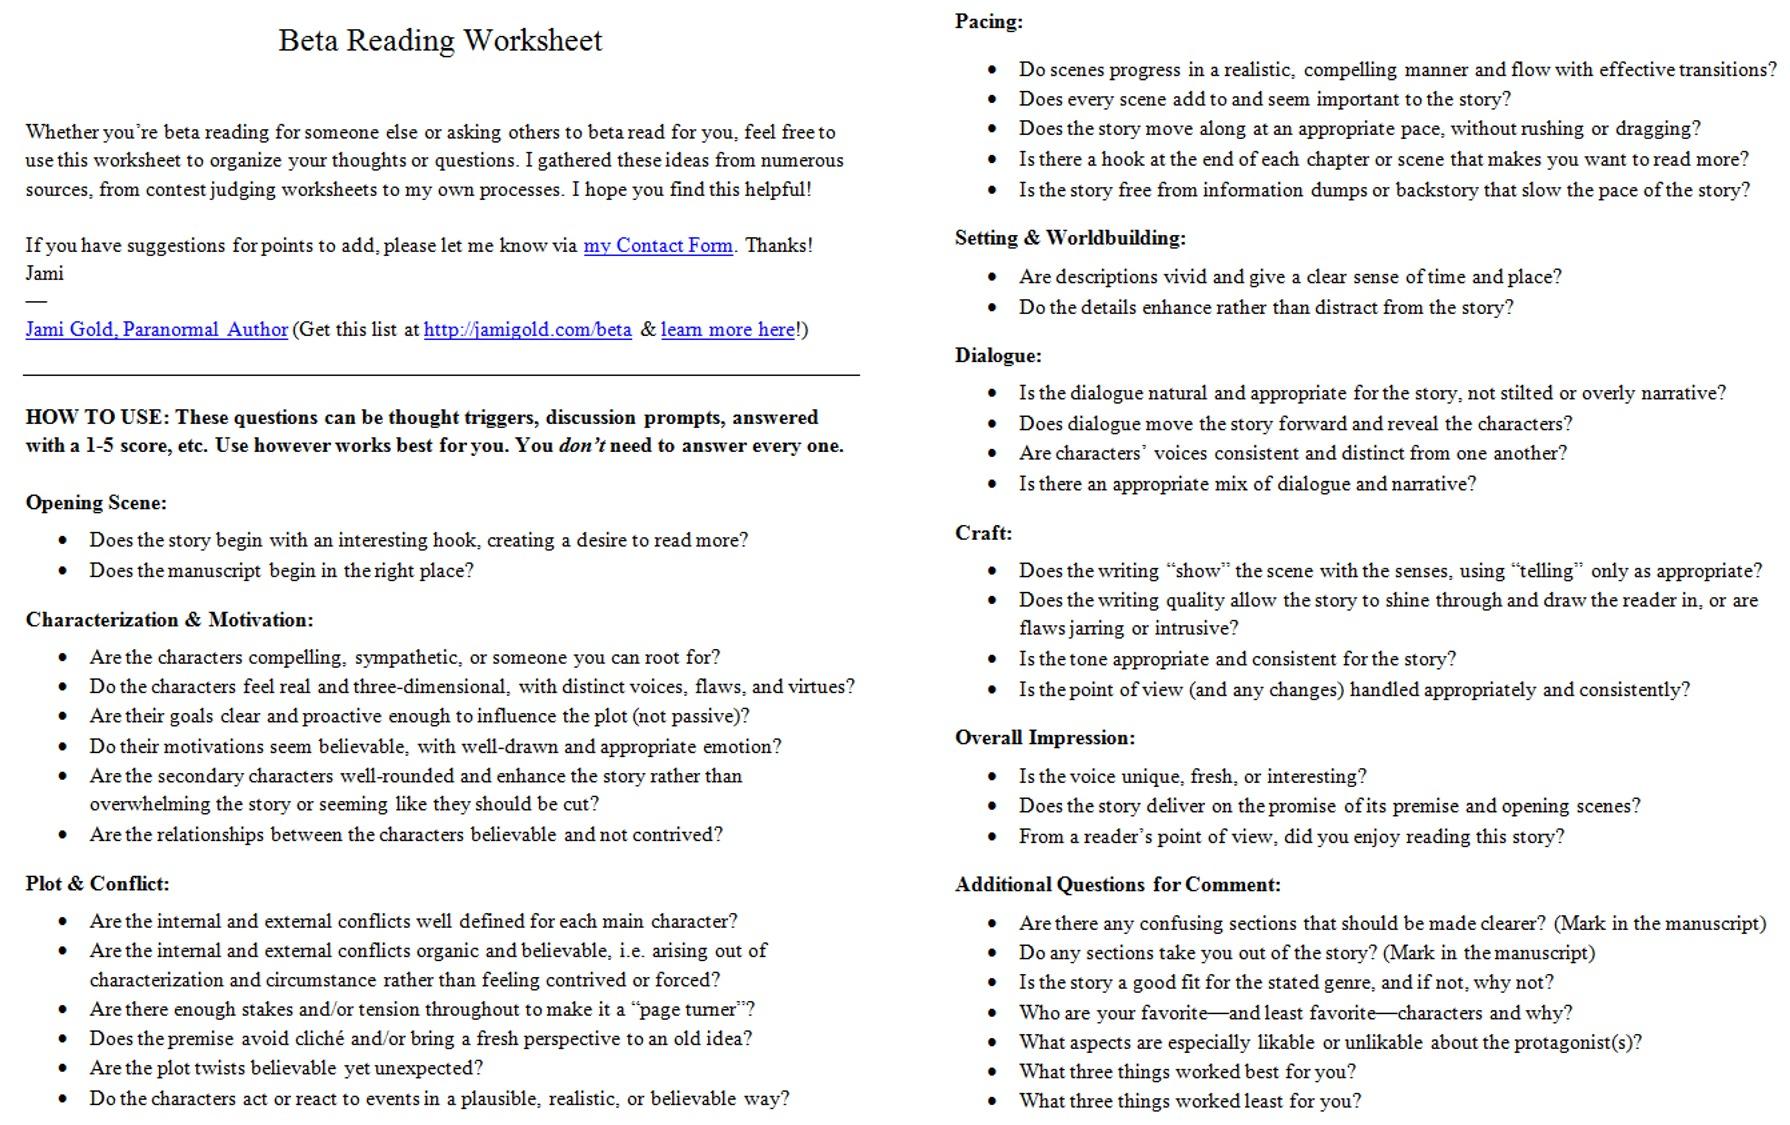 Proatmealus  Mesmerizing Worksheets For Writers  Jami Gold Paranormal Author With Extraordinary Screen Shot Of The Twopage Beta Reading Worksheet With Beautiful Kinds Of Noun Worksheet Also Third Grade History Worksheets In Addition Free Printable Counting Worksheets For Kindergarten And Exponents Powers Of  Worksheet As Well As Free Division Worksheets For Th Grade Additionally Standard  Mathematics Worksheet From Jamigoldcom With Proatmealus  Extraordinary Worksheets For Writers  Jami Gold Paranormal Author With Beautiful Screen Shot Of The Twopage Beta Reading Worksheet And Mesmerizing Kinds Of Noun Worksheet Also Third Grade History Worksheets In Addition Free Printable Counting Worksheets For Kindergarten From Jamigoldcom